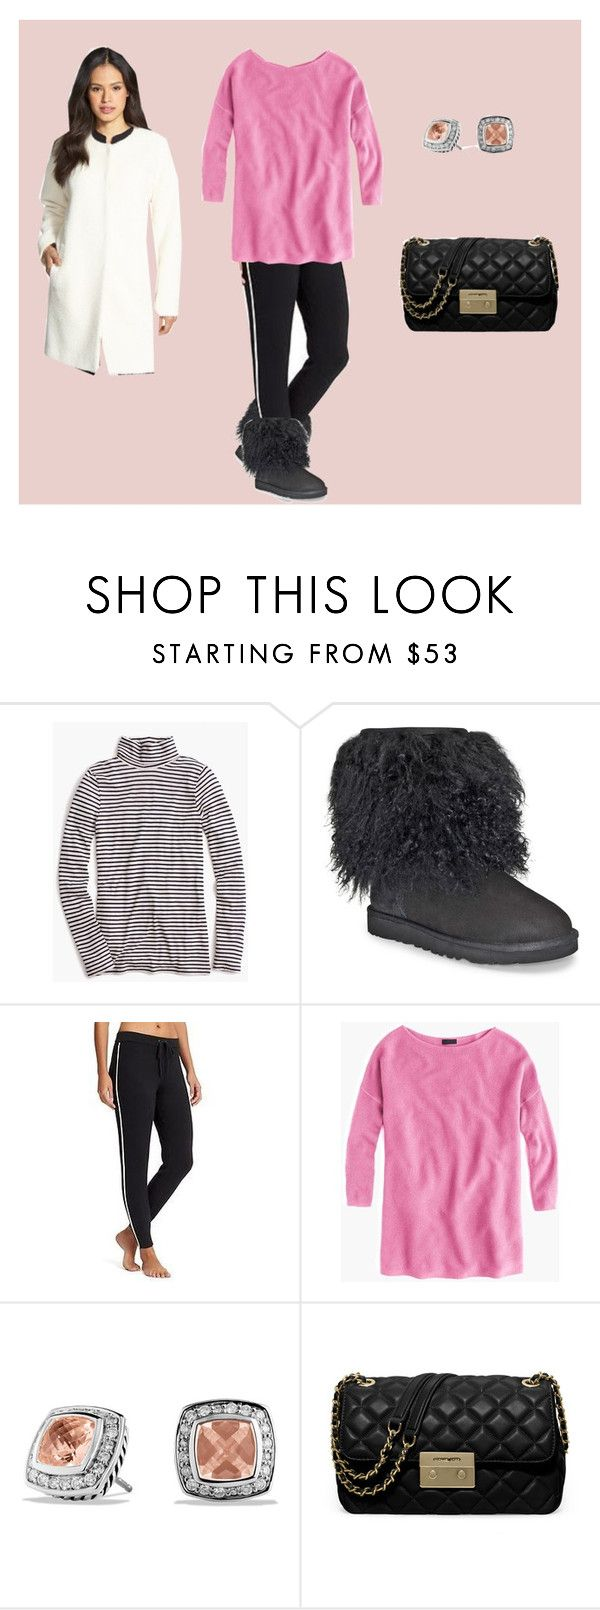 """Sweater Weather Weekend of Jan. 7, 2017"" by bichonluvr ❤ liked on Polyvore featuring J.Crew, UGG, David Yurman, MICHAEL Michael Kors and Eileen Fisher"